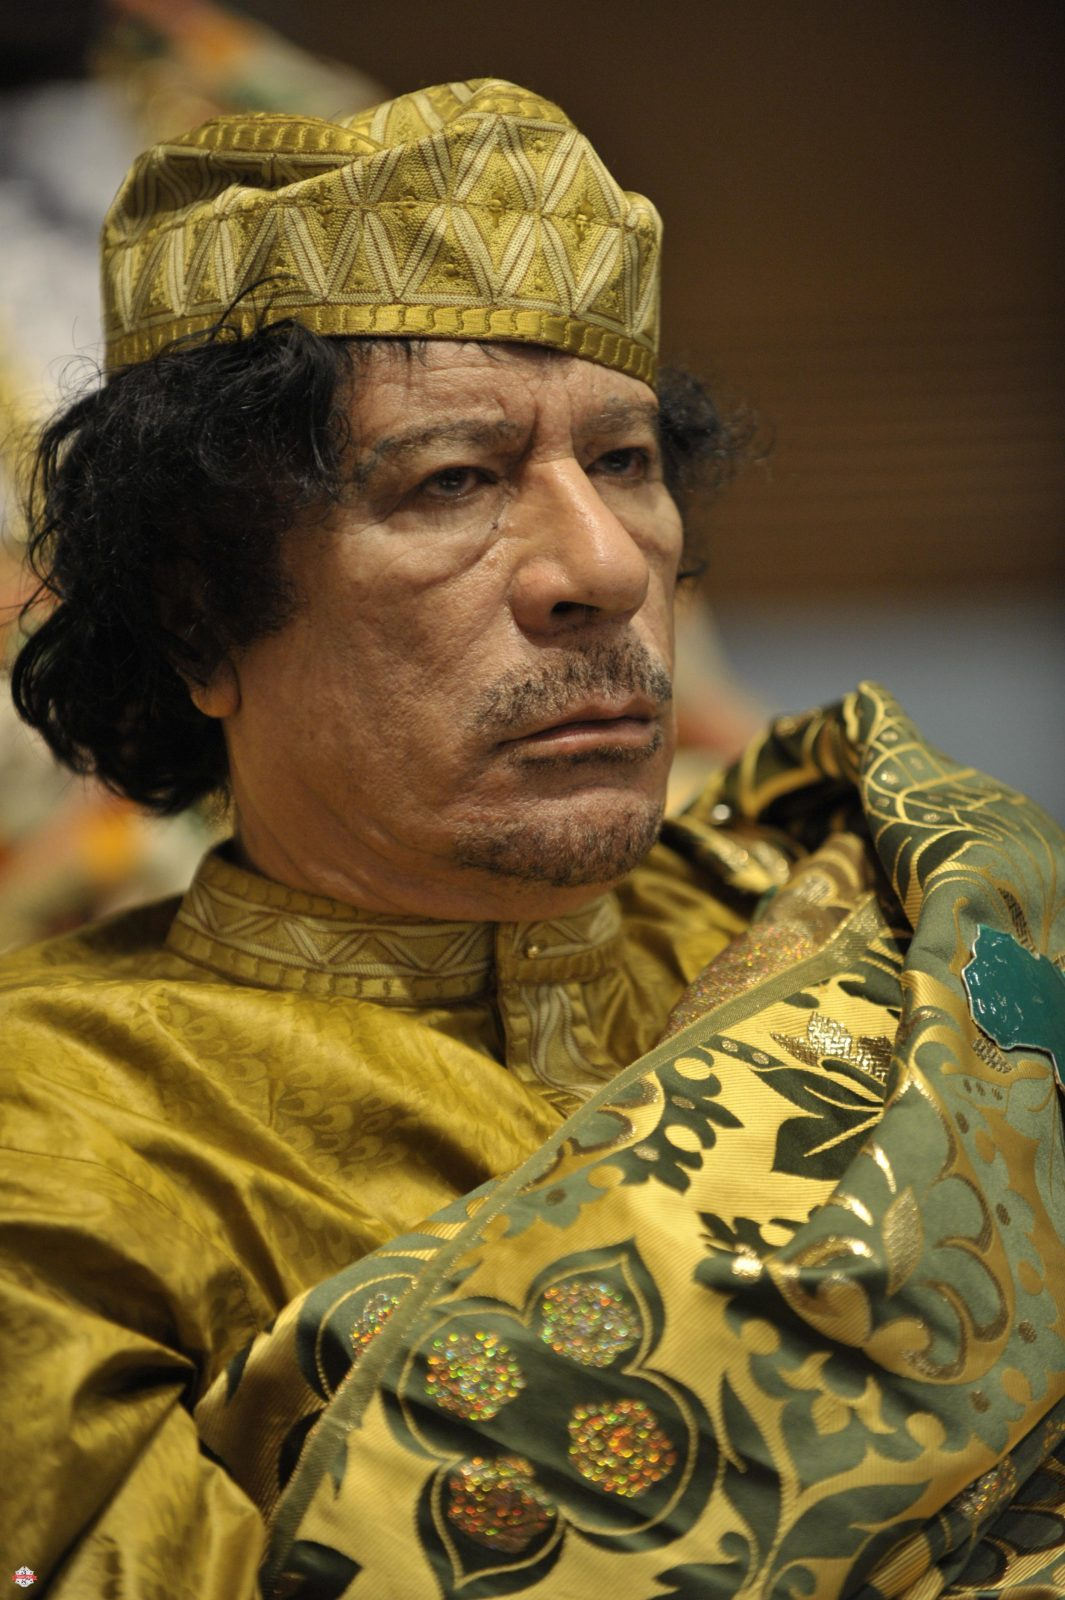 Muammar Qaddafi، the Libyan chief of state، attends the 12th African Union Summit in Addis Ababa، Ethiopia، Feb. 2، 2009. Qaddafi was elected chairman of the organization. (U.S. Navy photo by Mass Communication Specialist 2nd Class Jesse B. Awalt/Released)